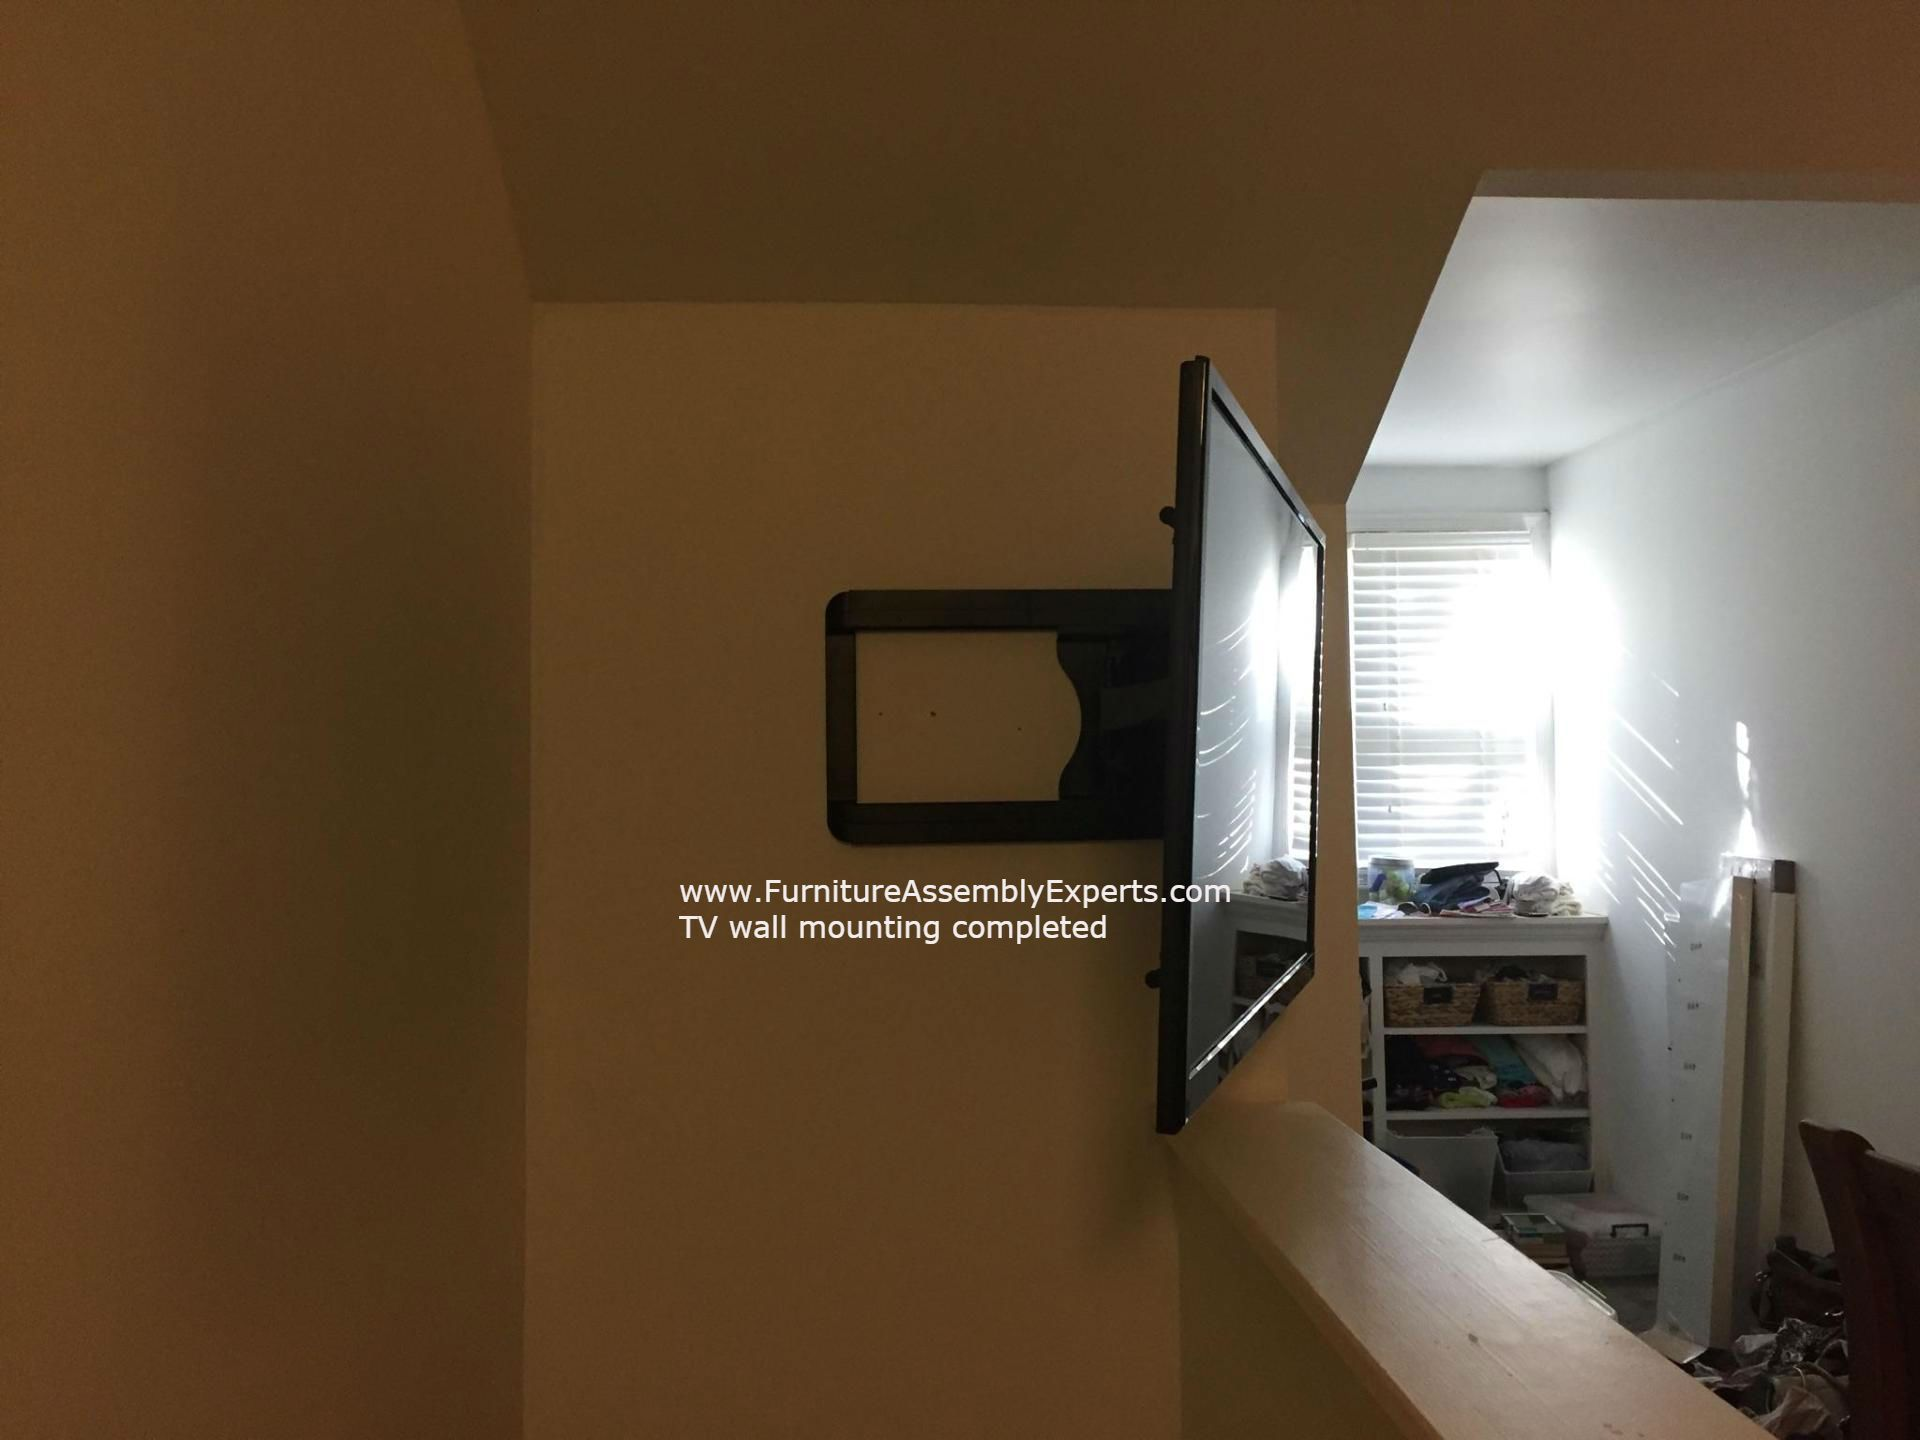 37 Wall Mounted TV Ideas Interior and